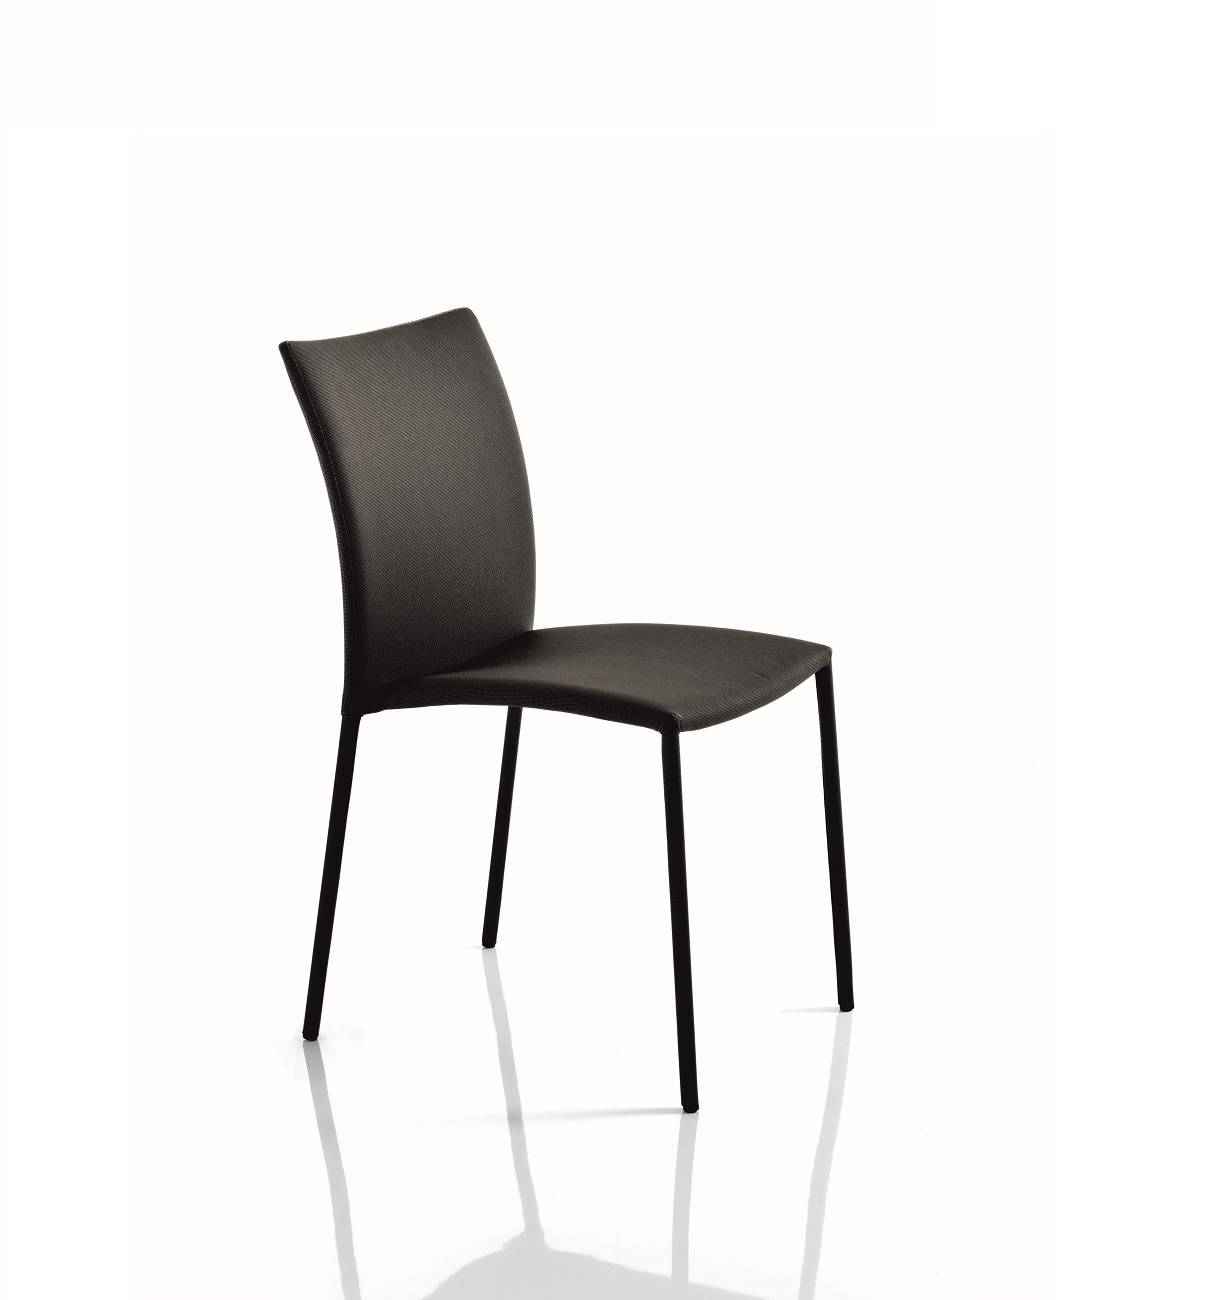 Simba Chair, Bontempi CASA Dining Chairs Brooklyn, New York